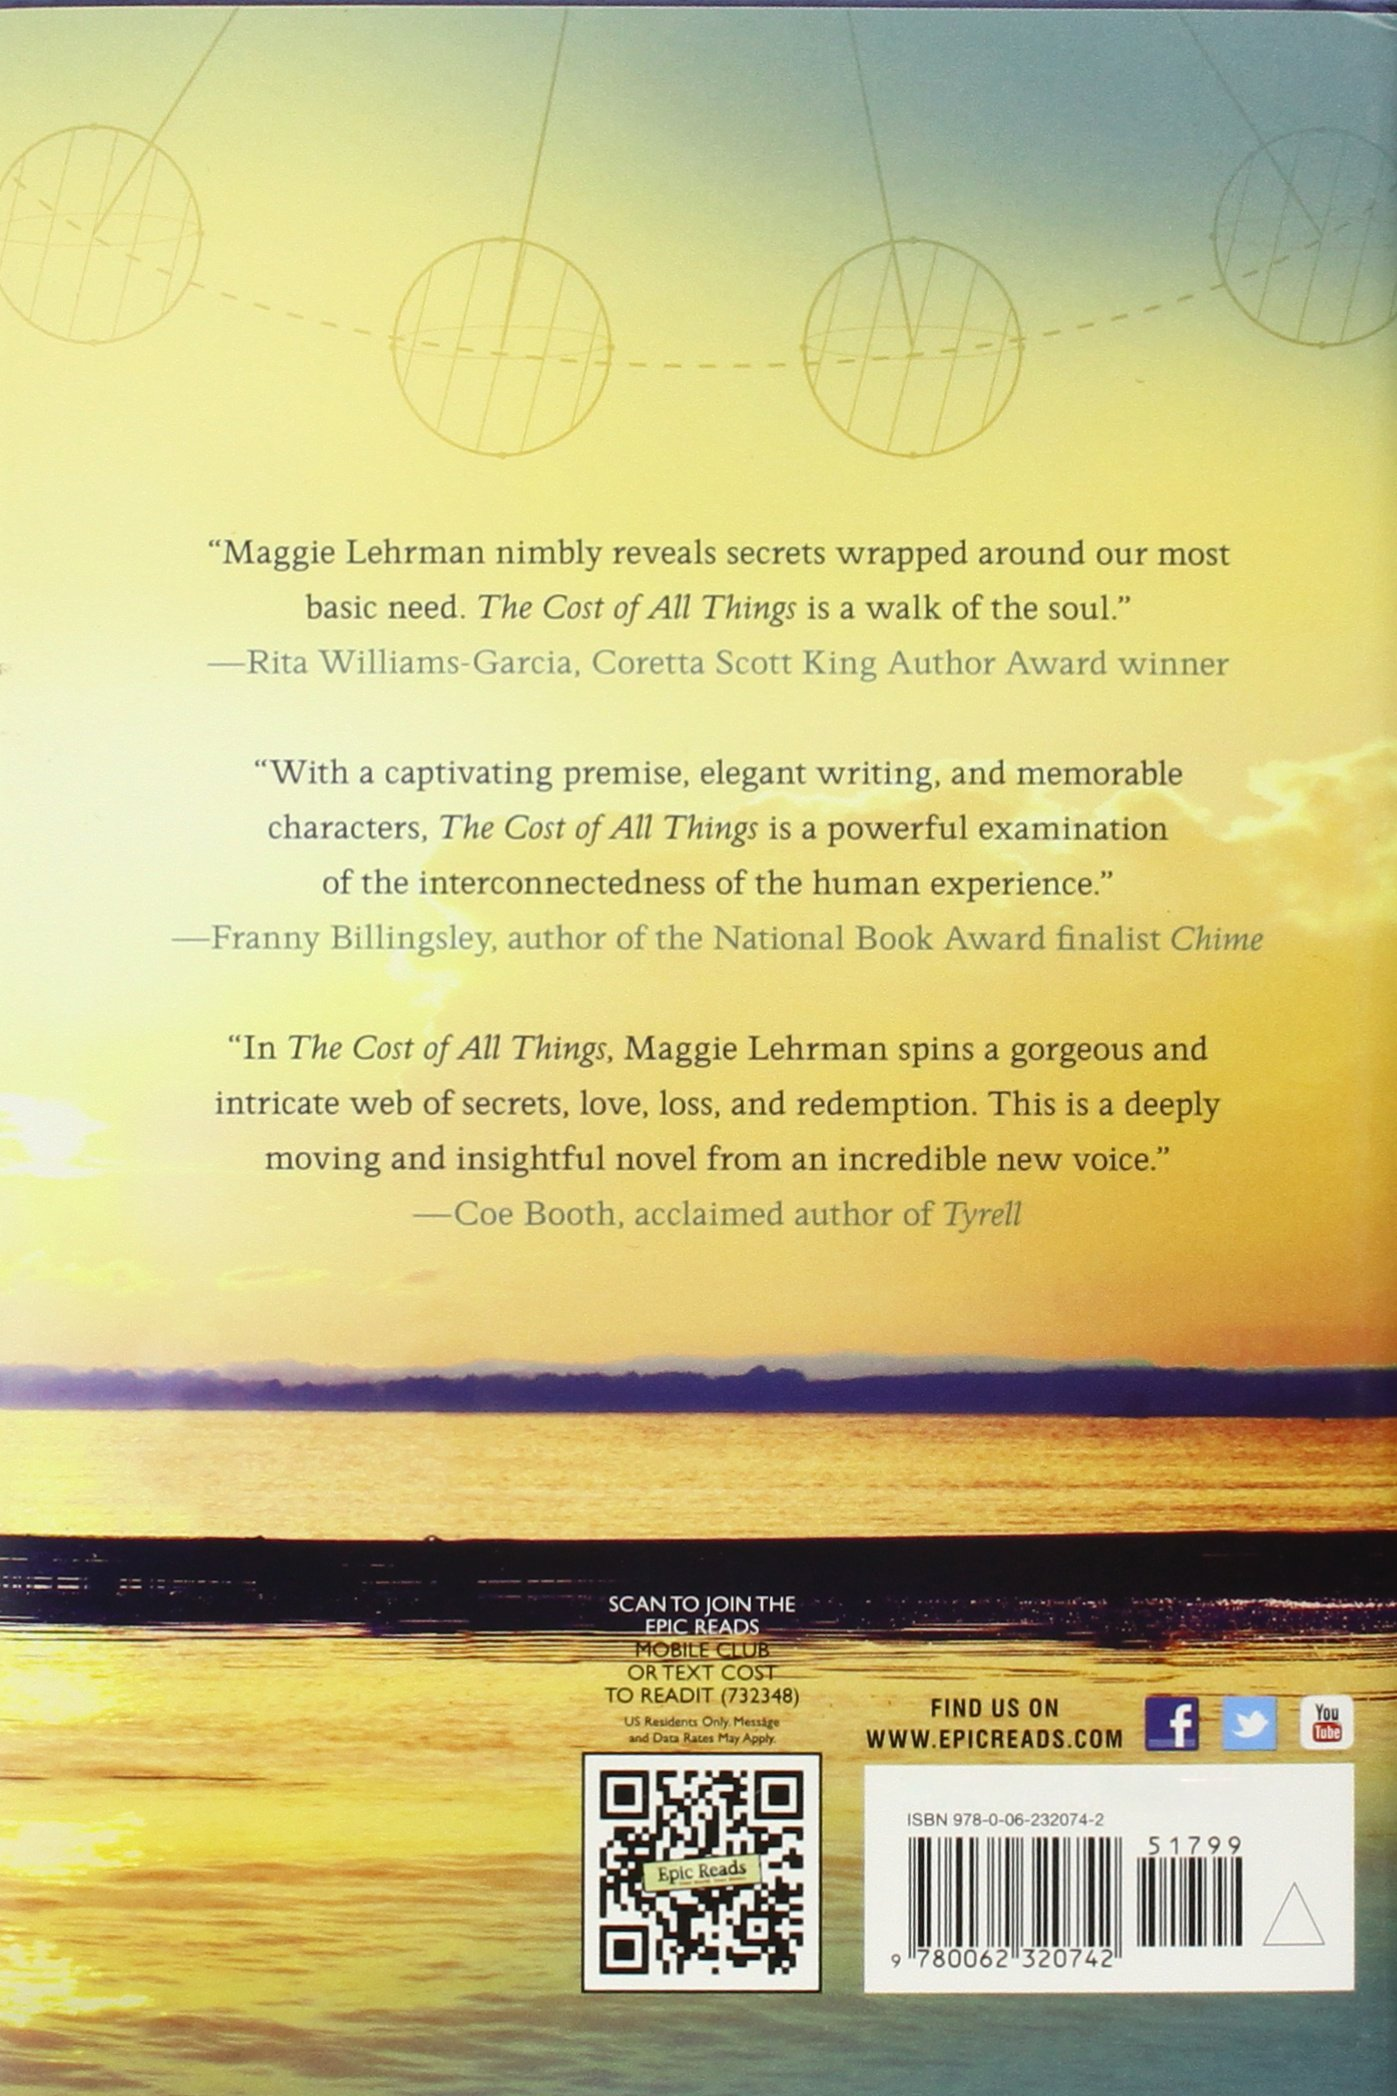 Amazon: The Cost Of All Things (9780062320742): Maggie Lehrman: Books